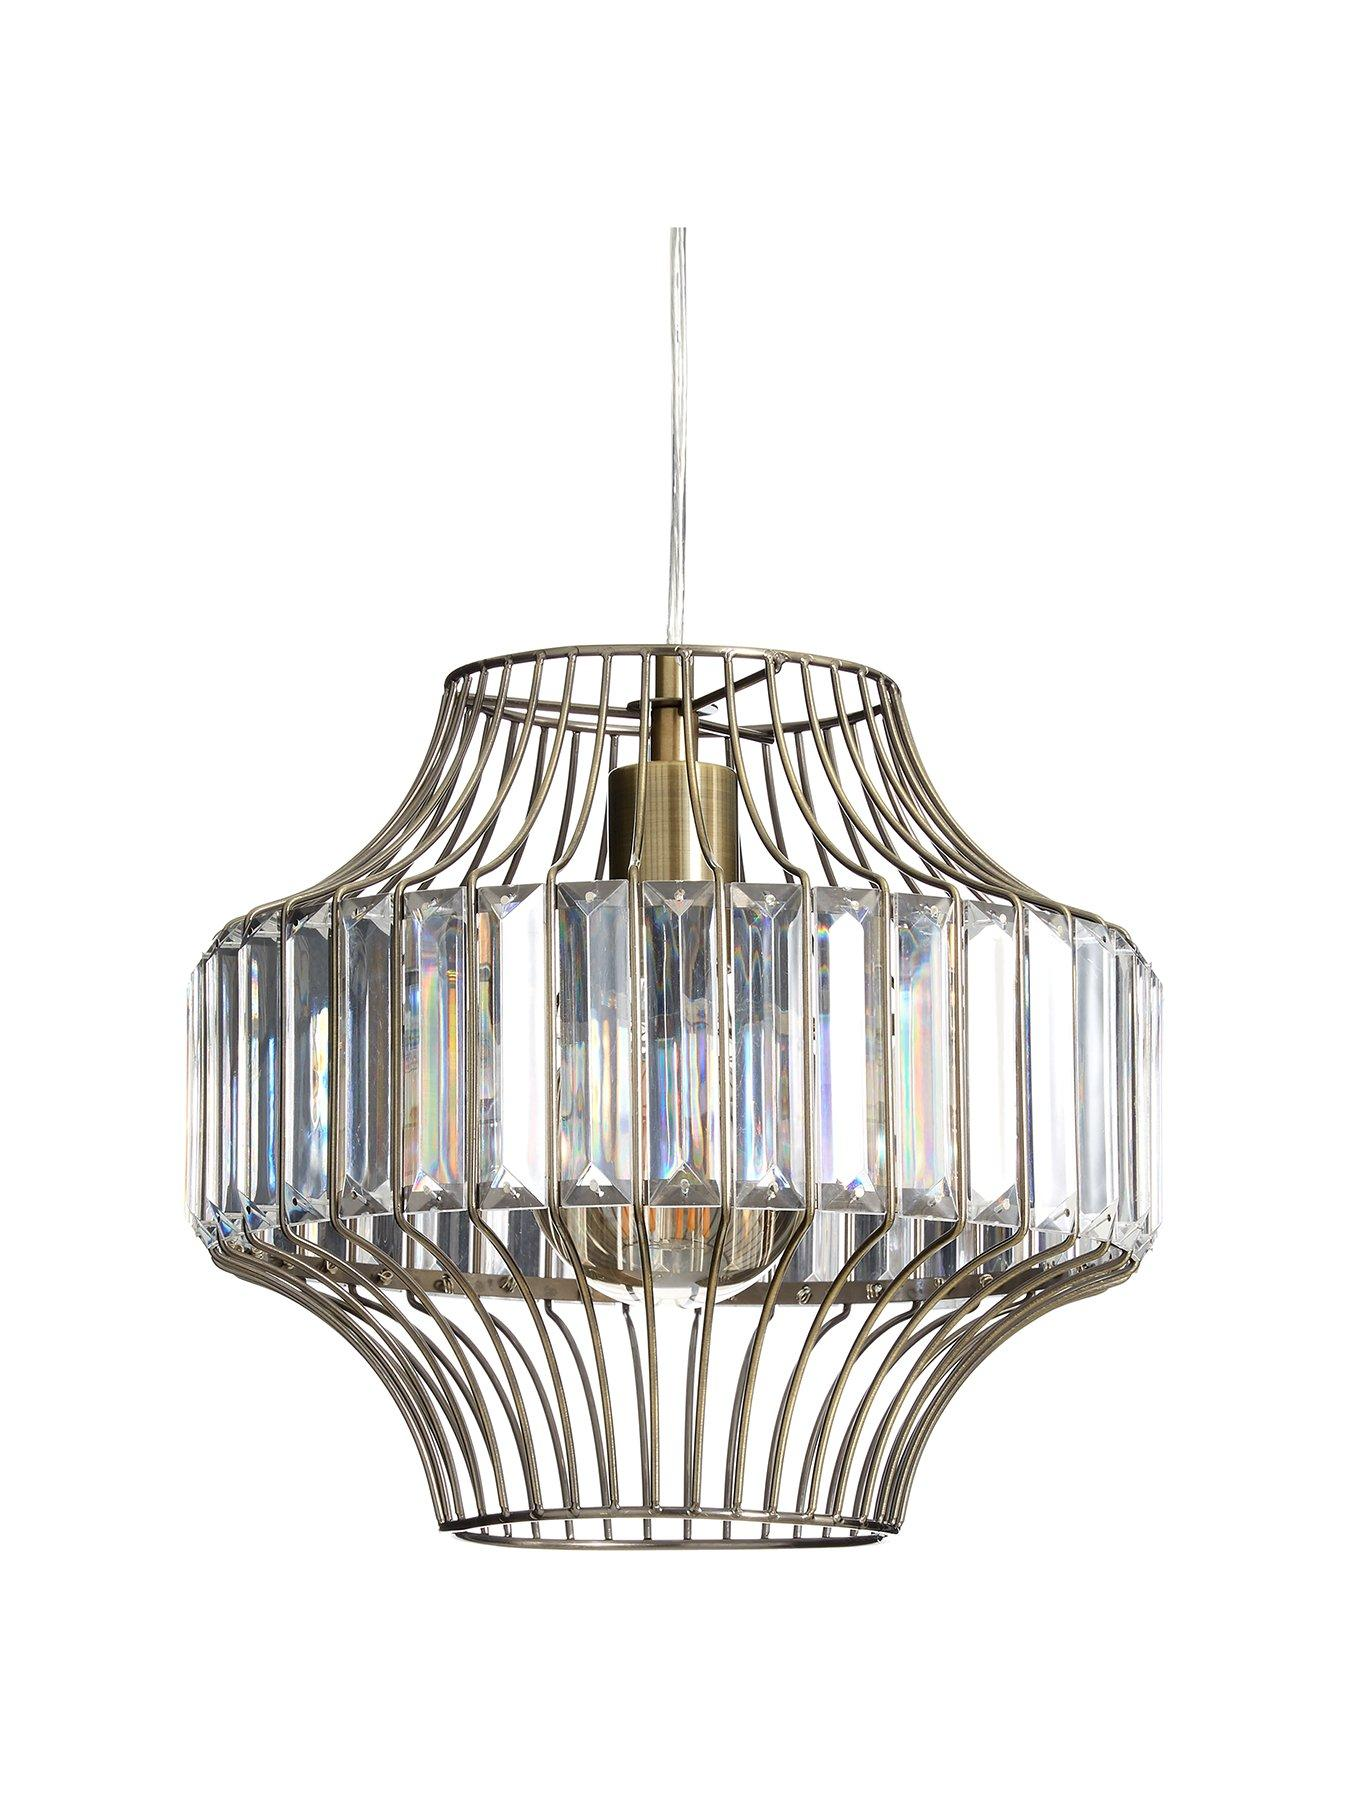 CO Z Traditional Drum Chandelier Lighting Bronze, 18'' Modern Farmhouse Pendant Light with White Fabric Shade, 6 Light Ceiling Light Fixture for